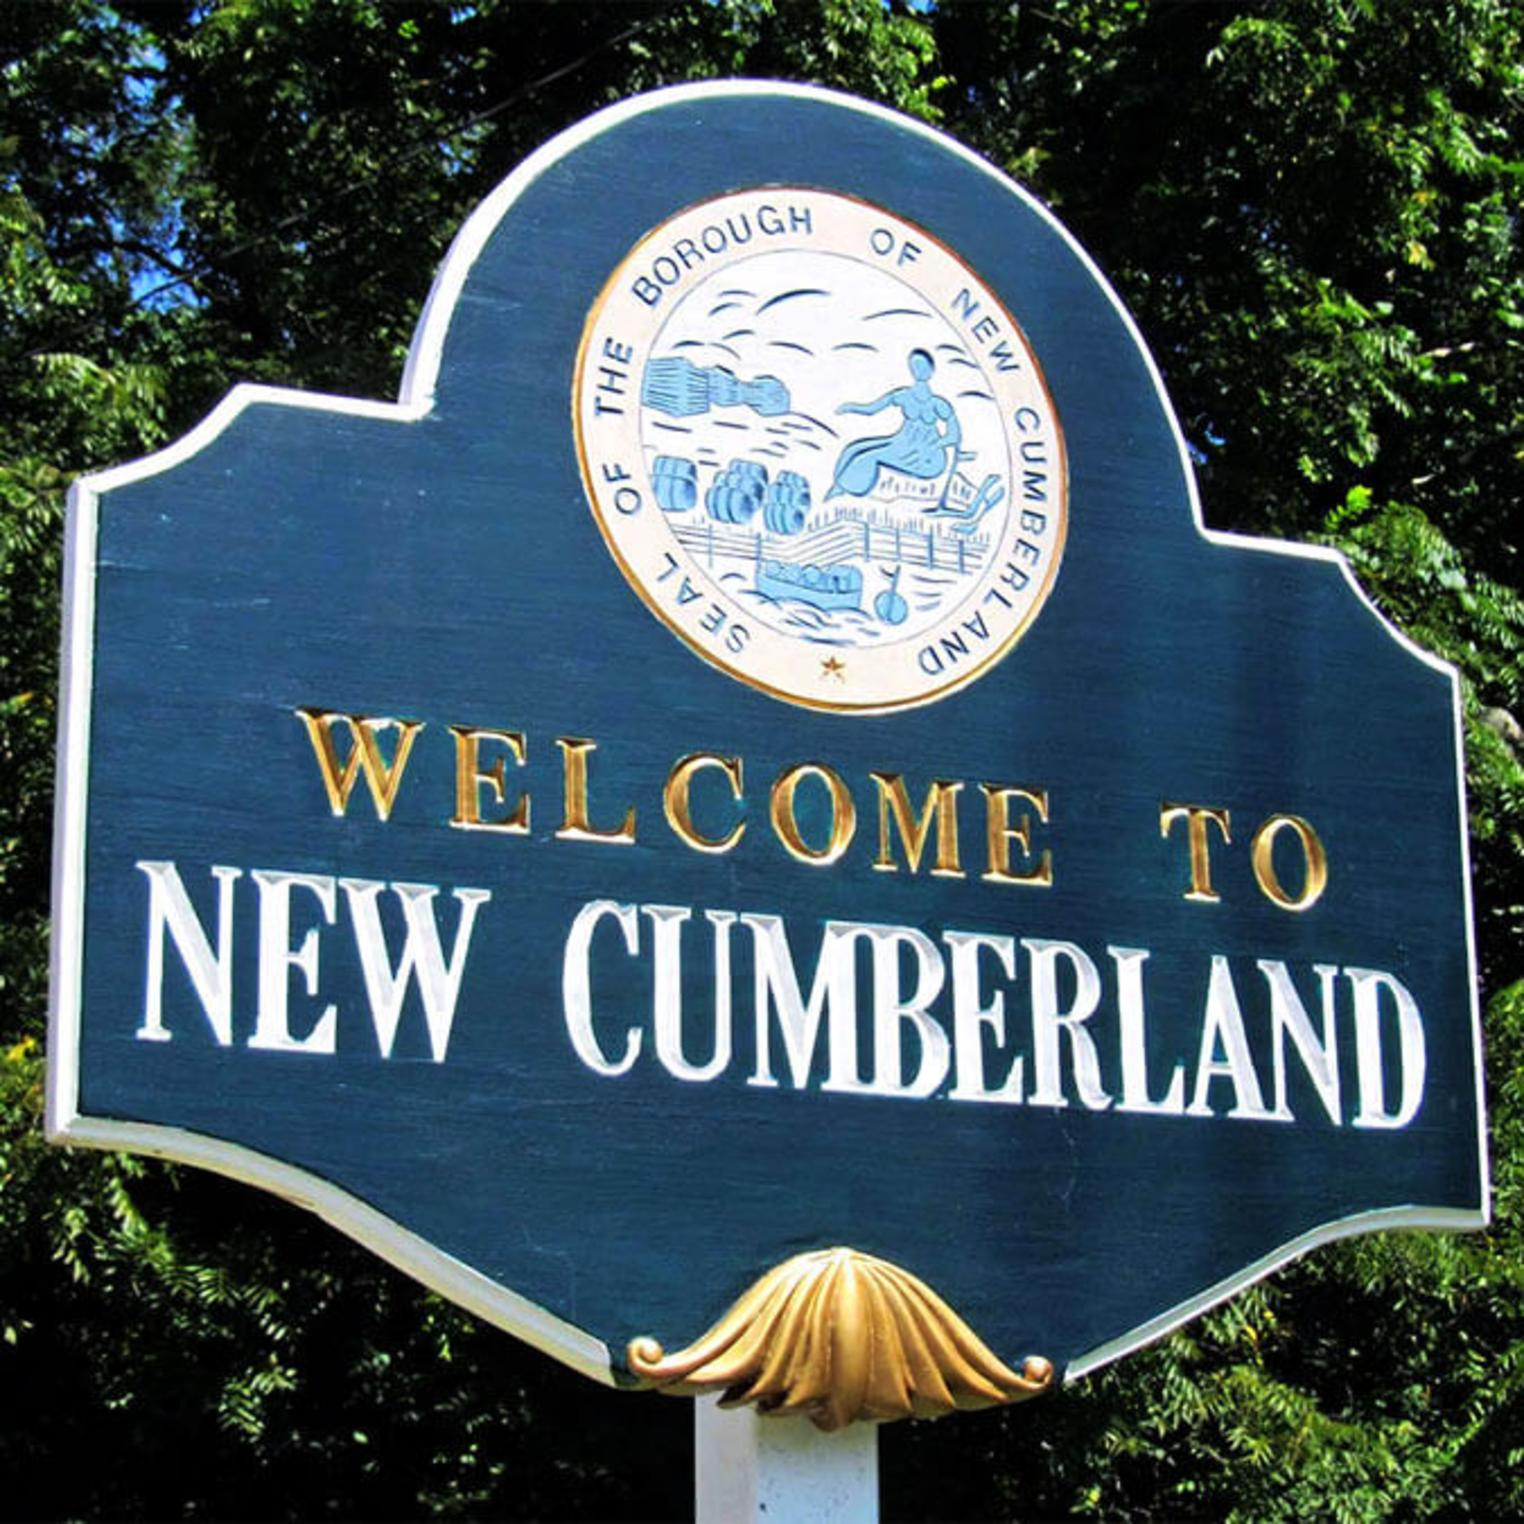 Welcome to New Cumberland